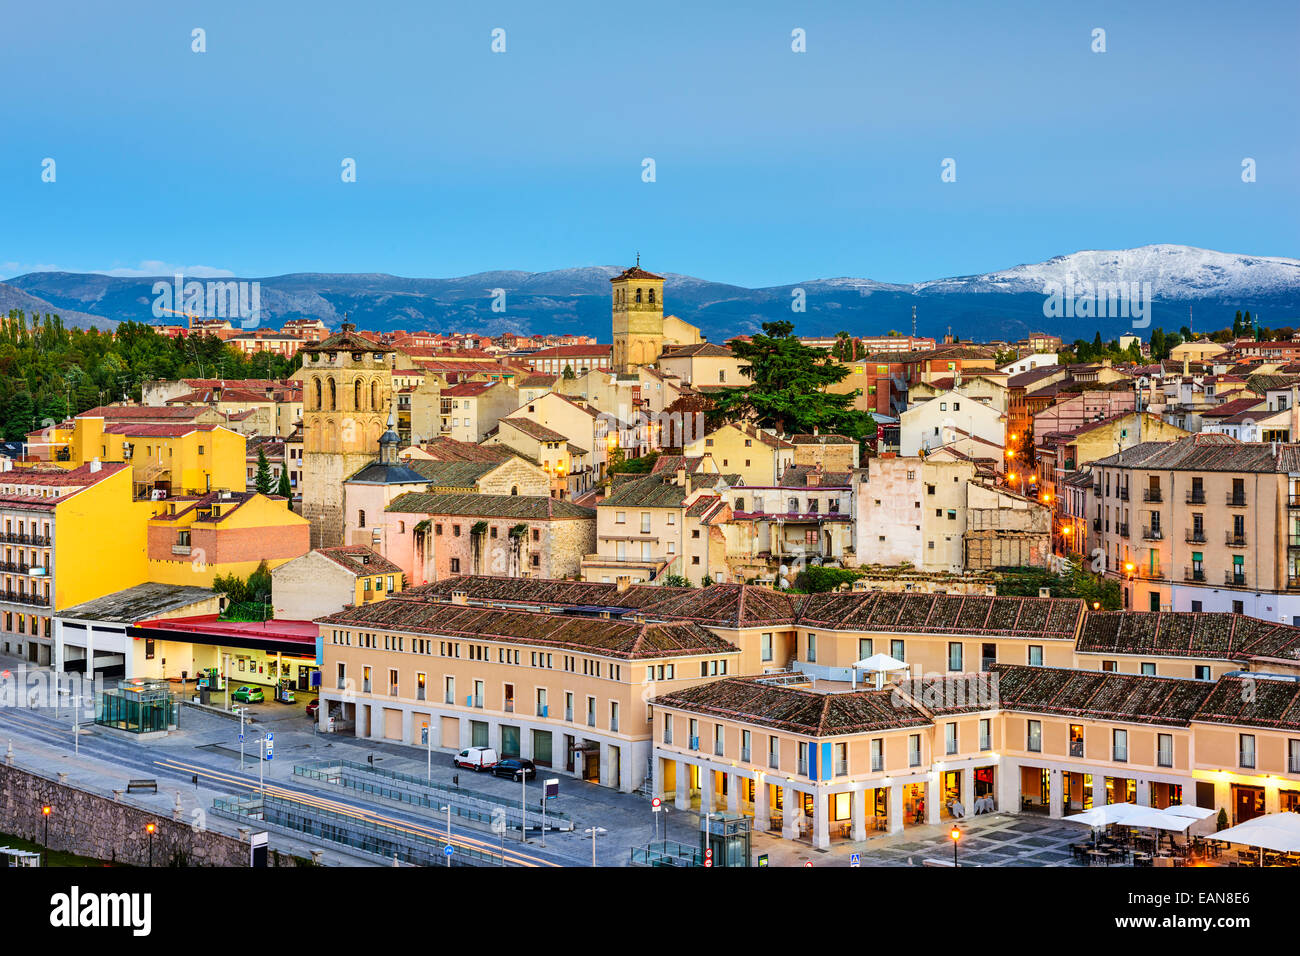 Segovia, Spain town skyline at dusk. - Stock Image